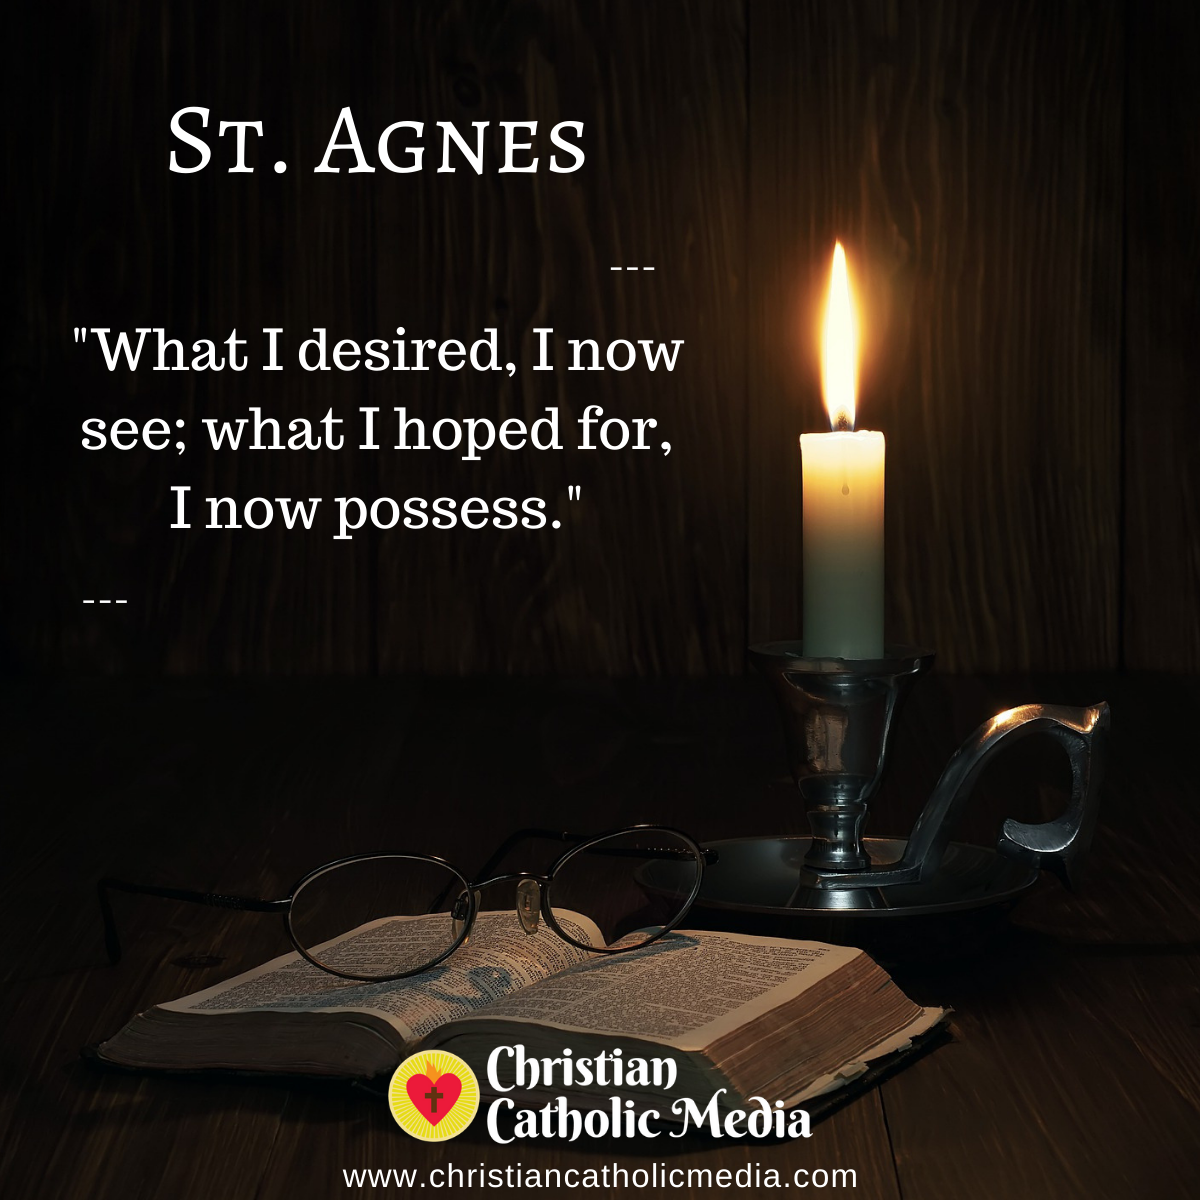 St. Agnes - Thursday November 19, 2020